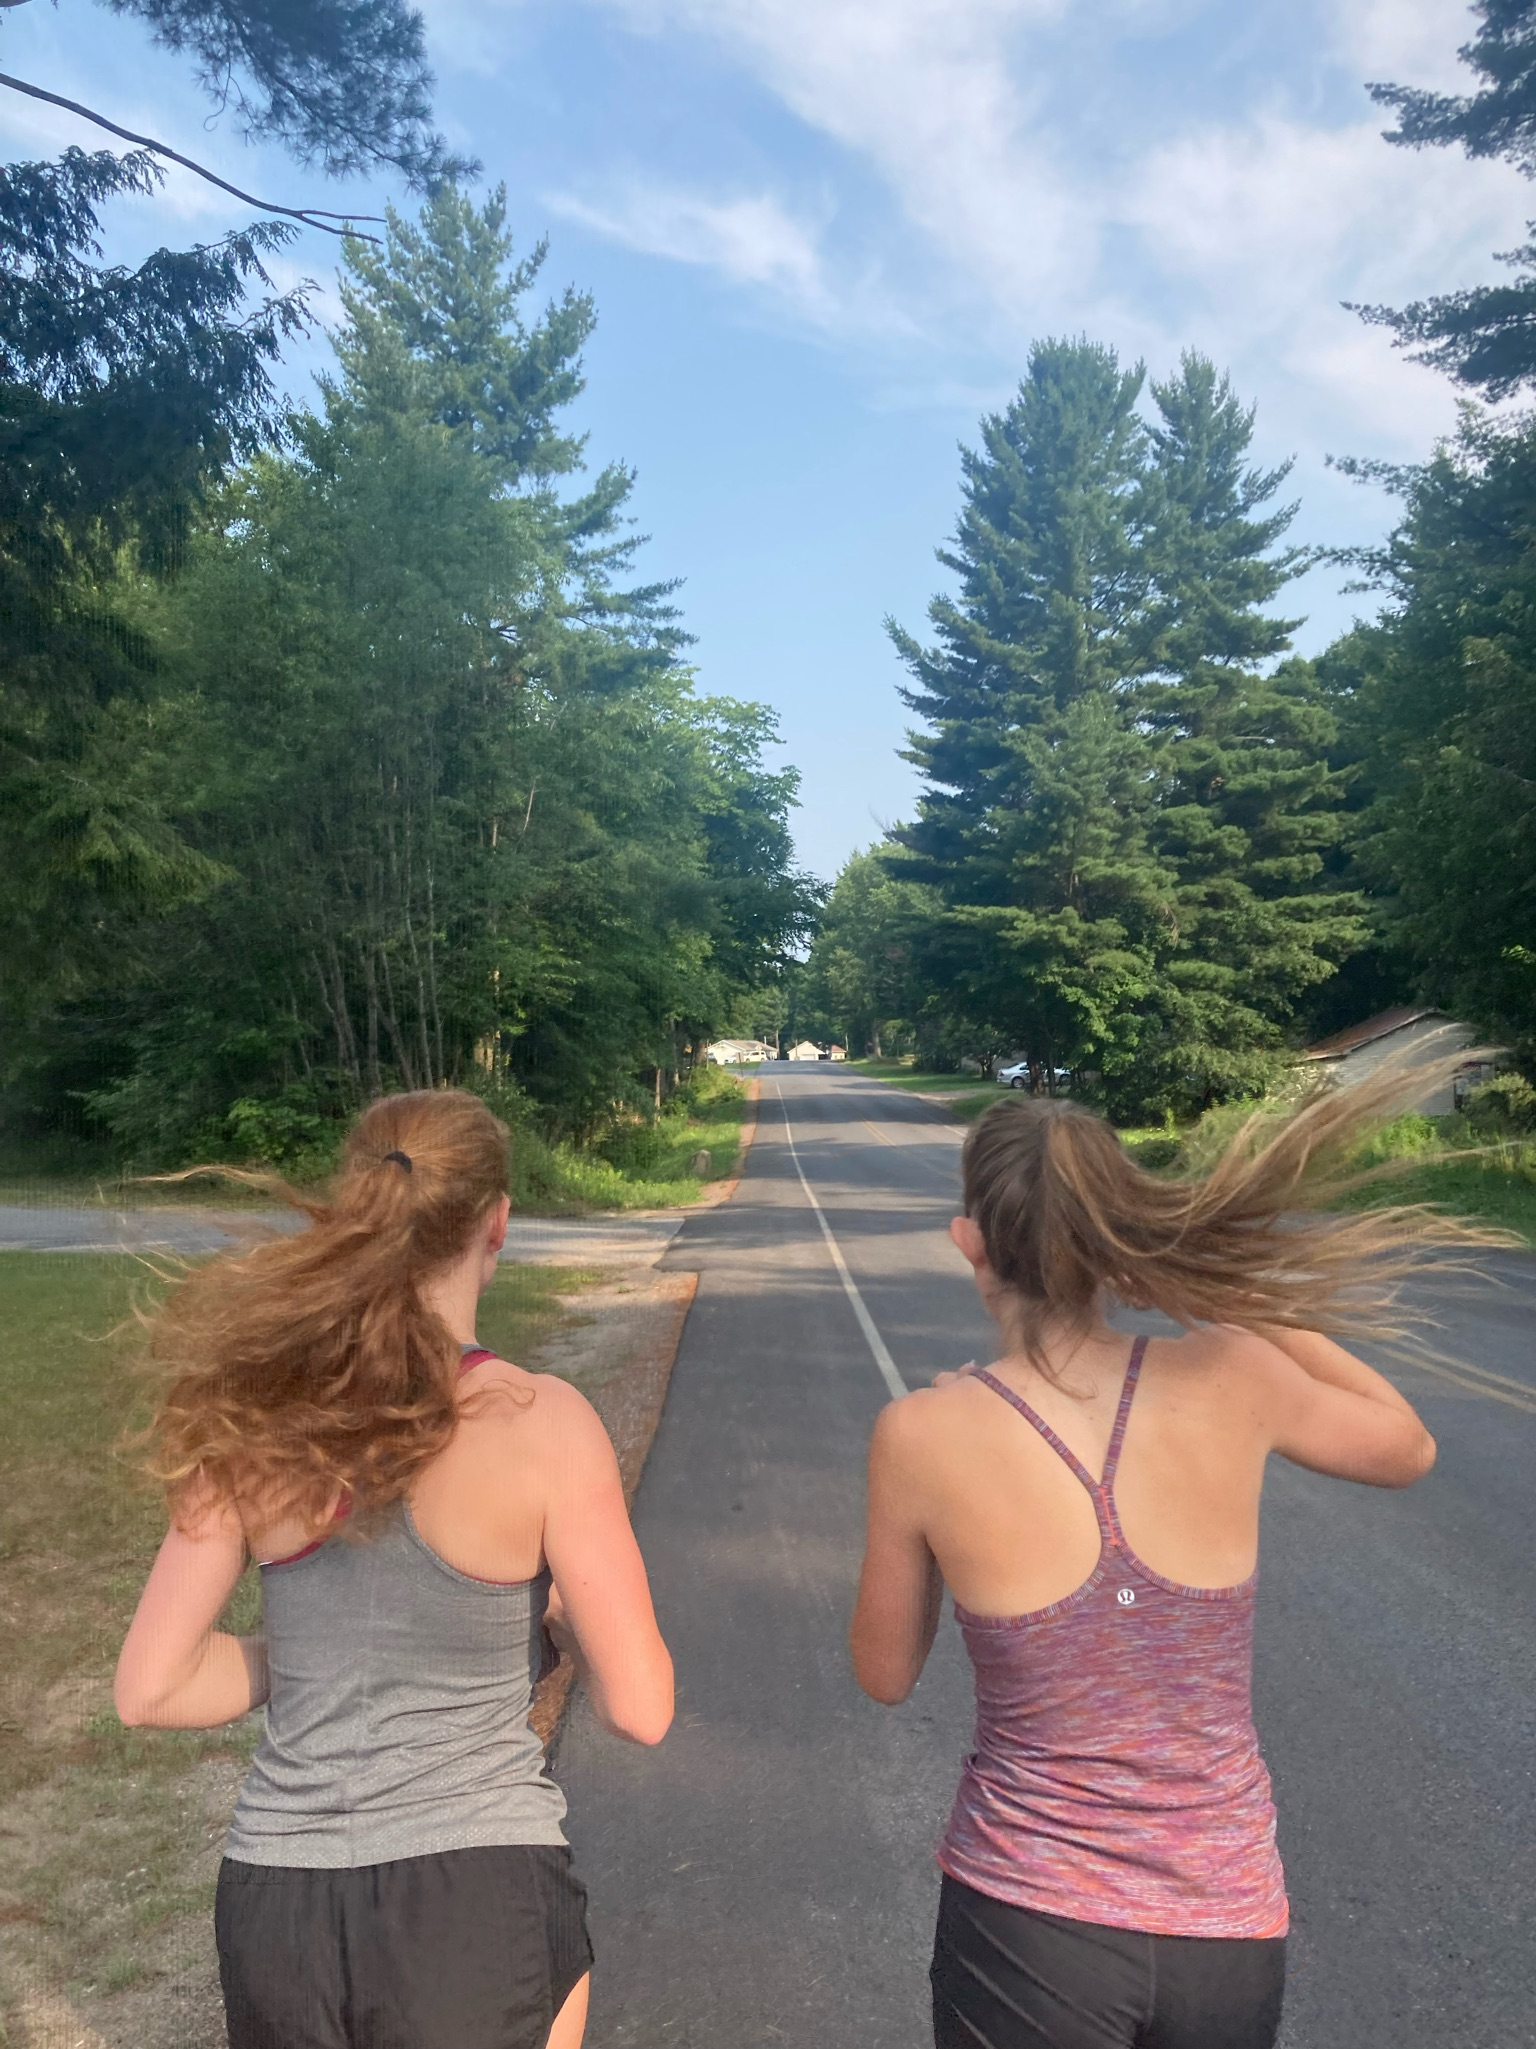 A photo of two girls running. Photo courtesy of the author.